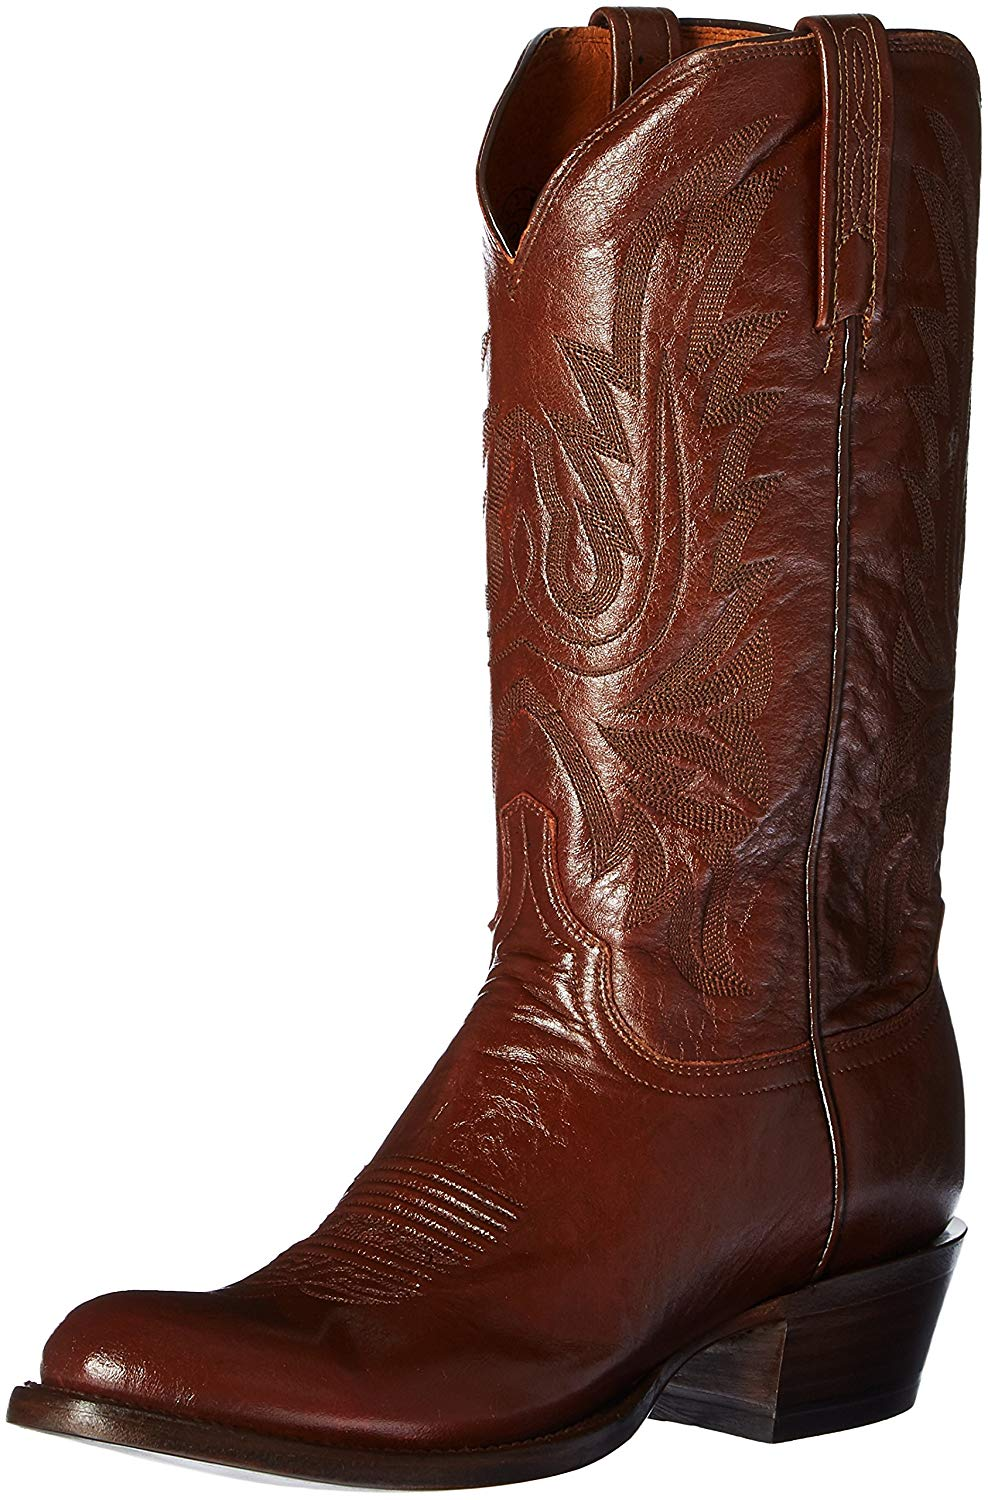 Lucchese Men's Carson Leather Cowboy Boot